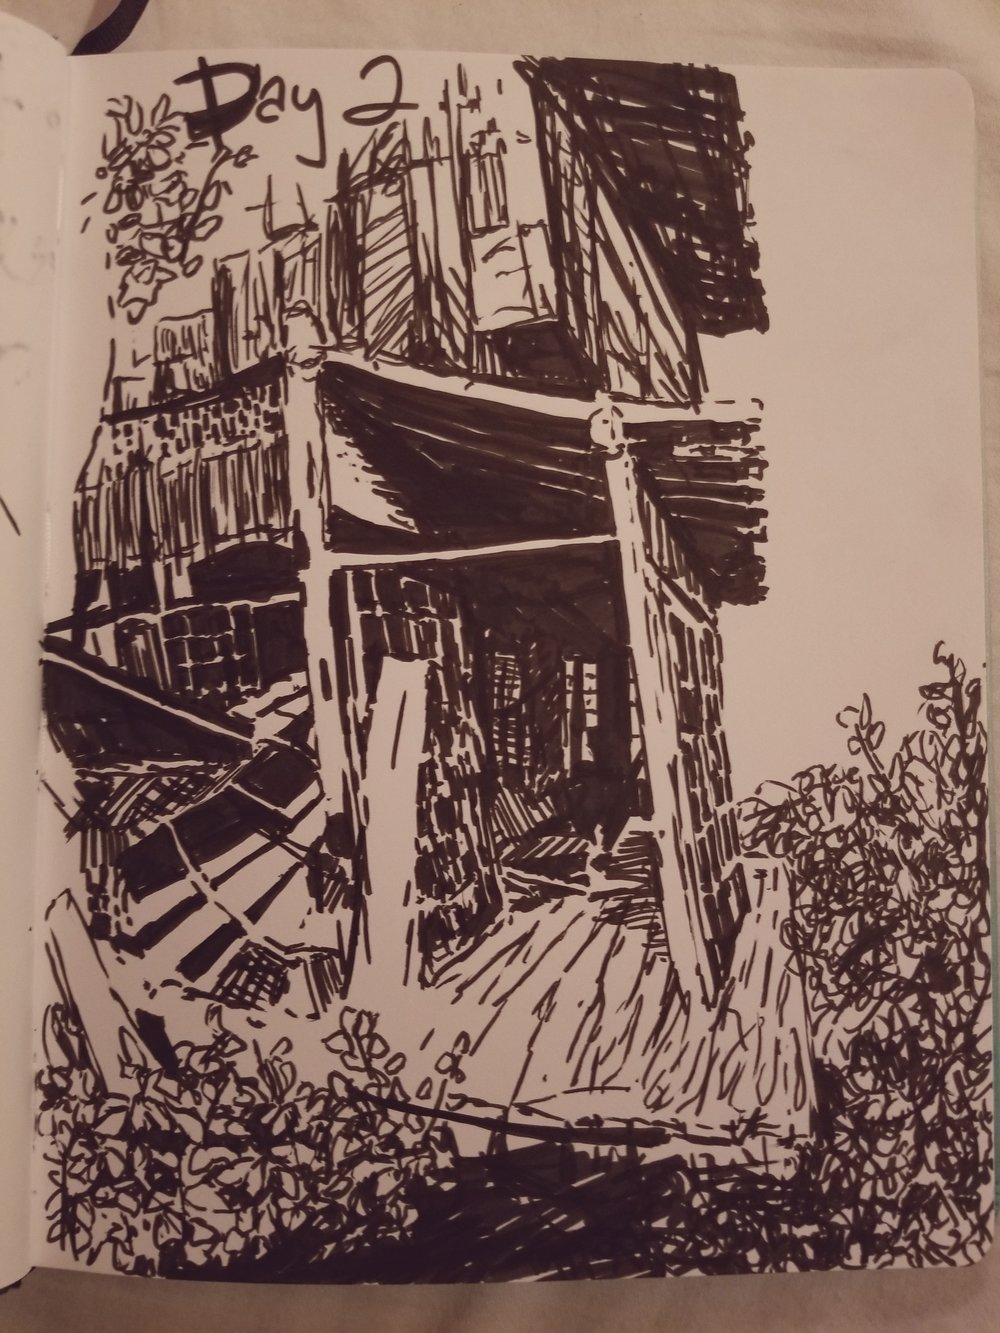 day 2 - pen drawing of an old building from reference